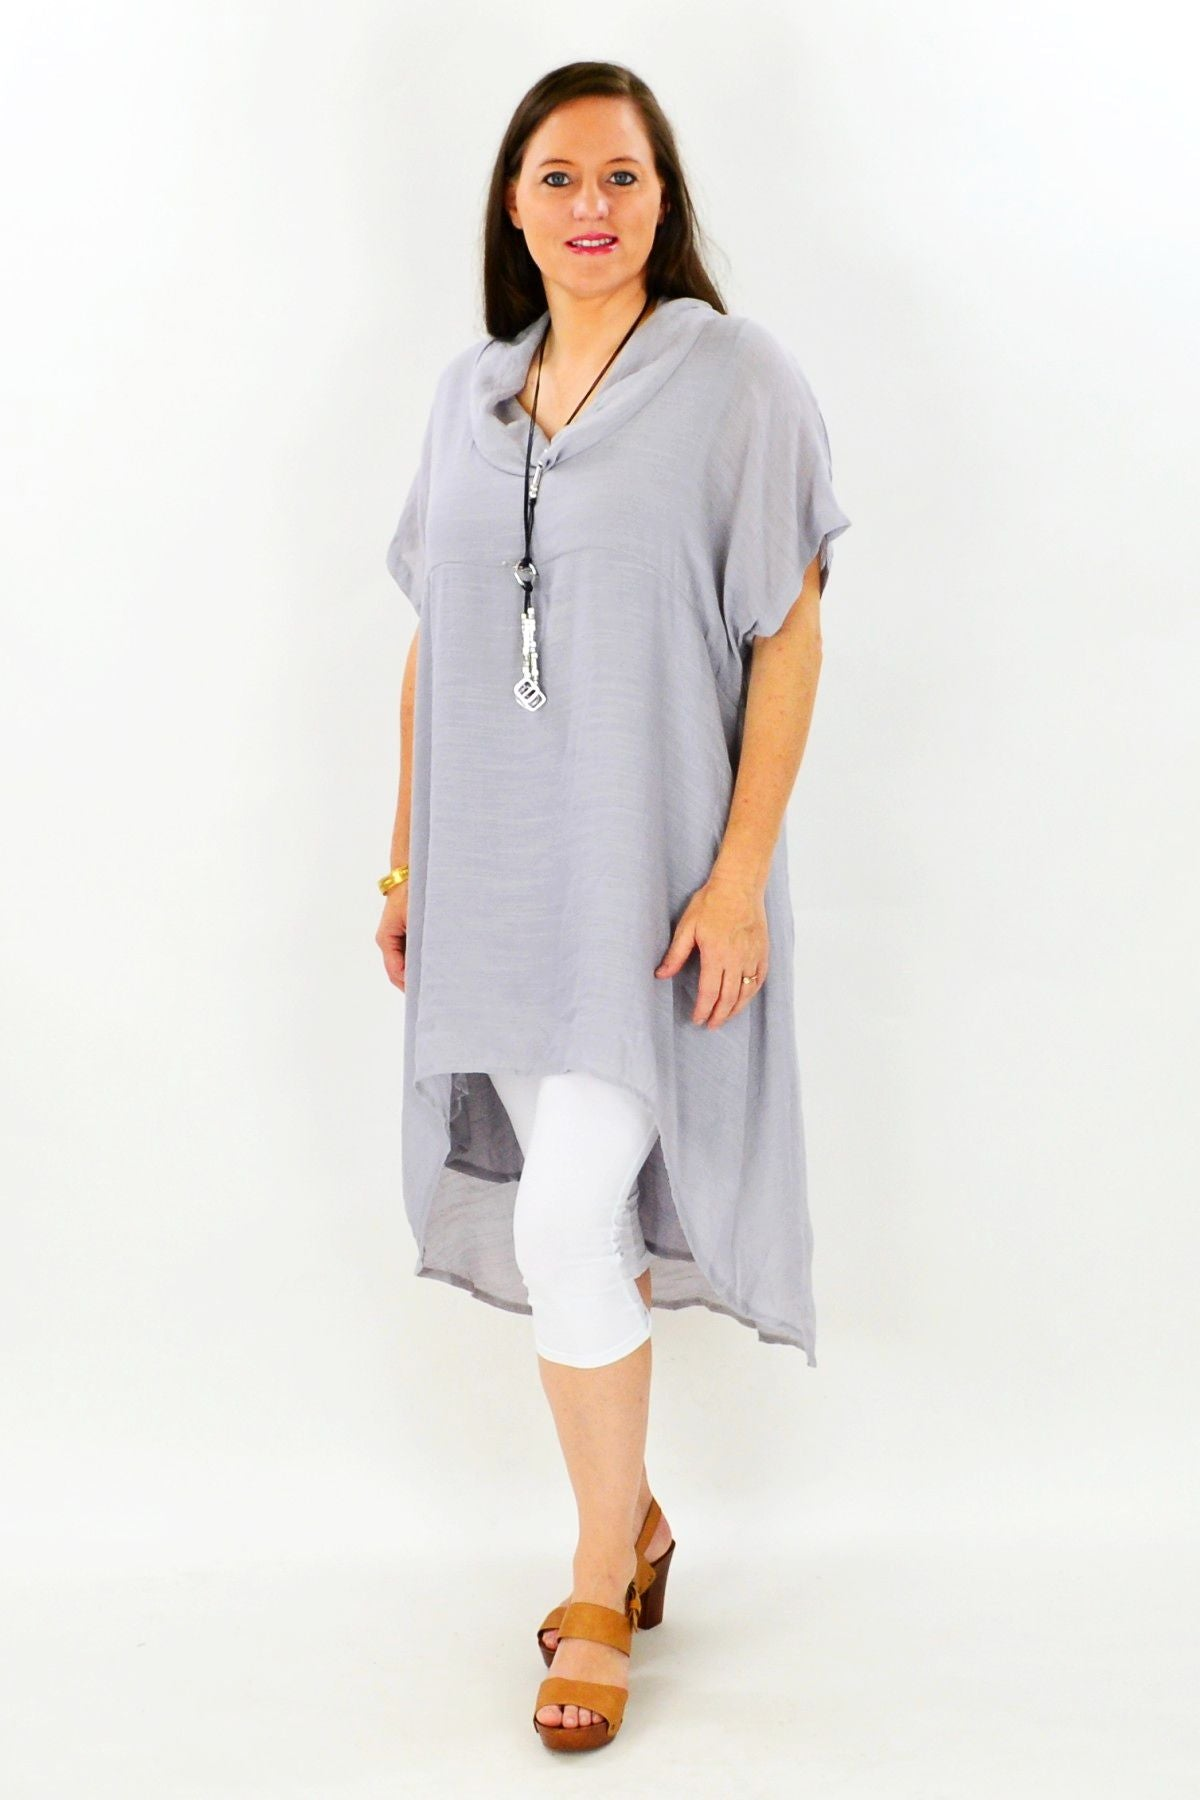 Orange Nancy Tunic - at I Love Tunics @ www.ilovetunics.com = Number One! Tunics Destination